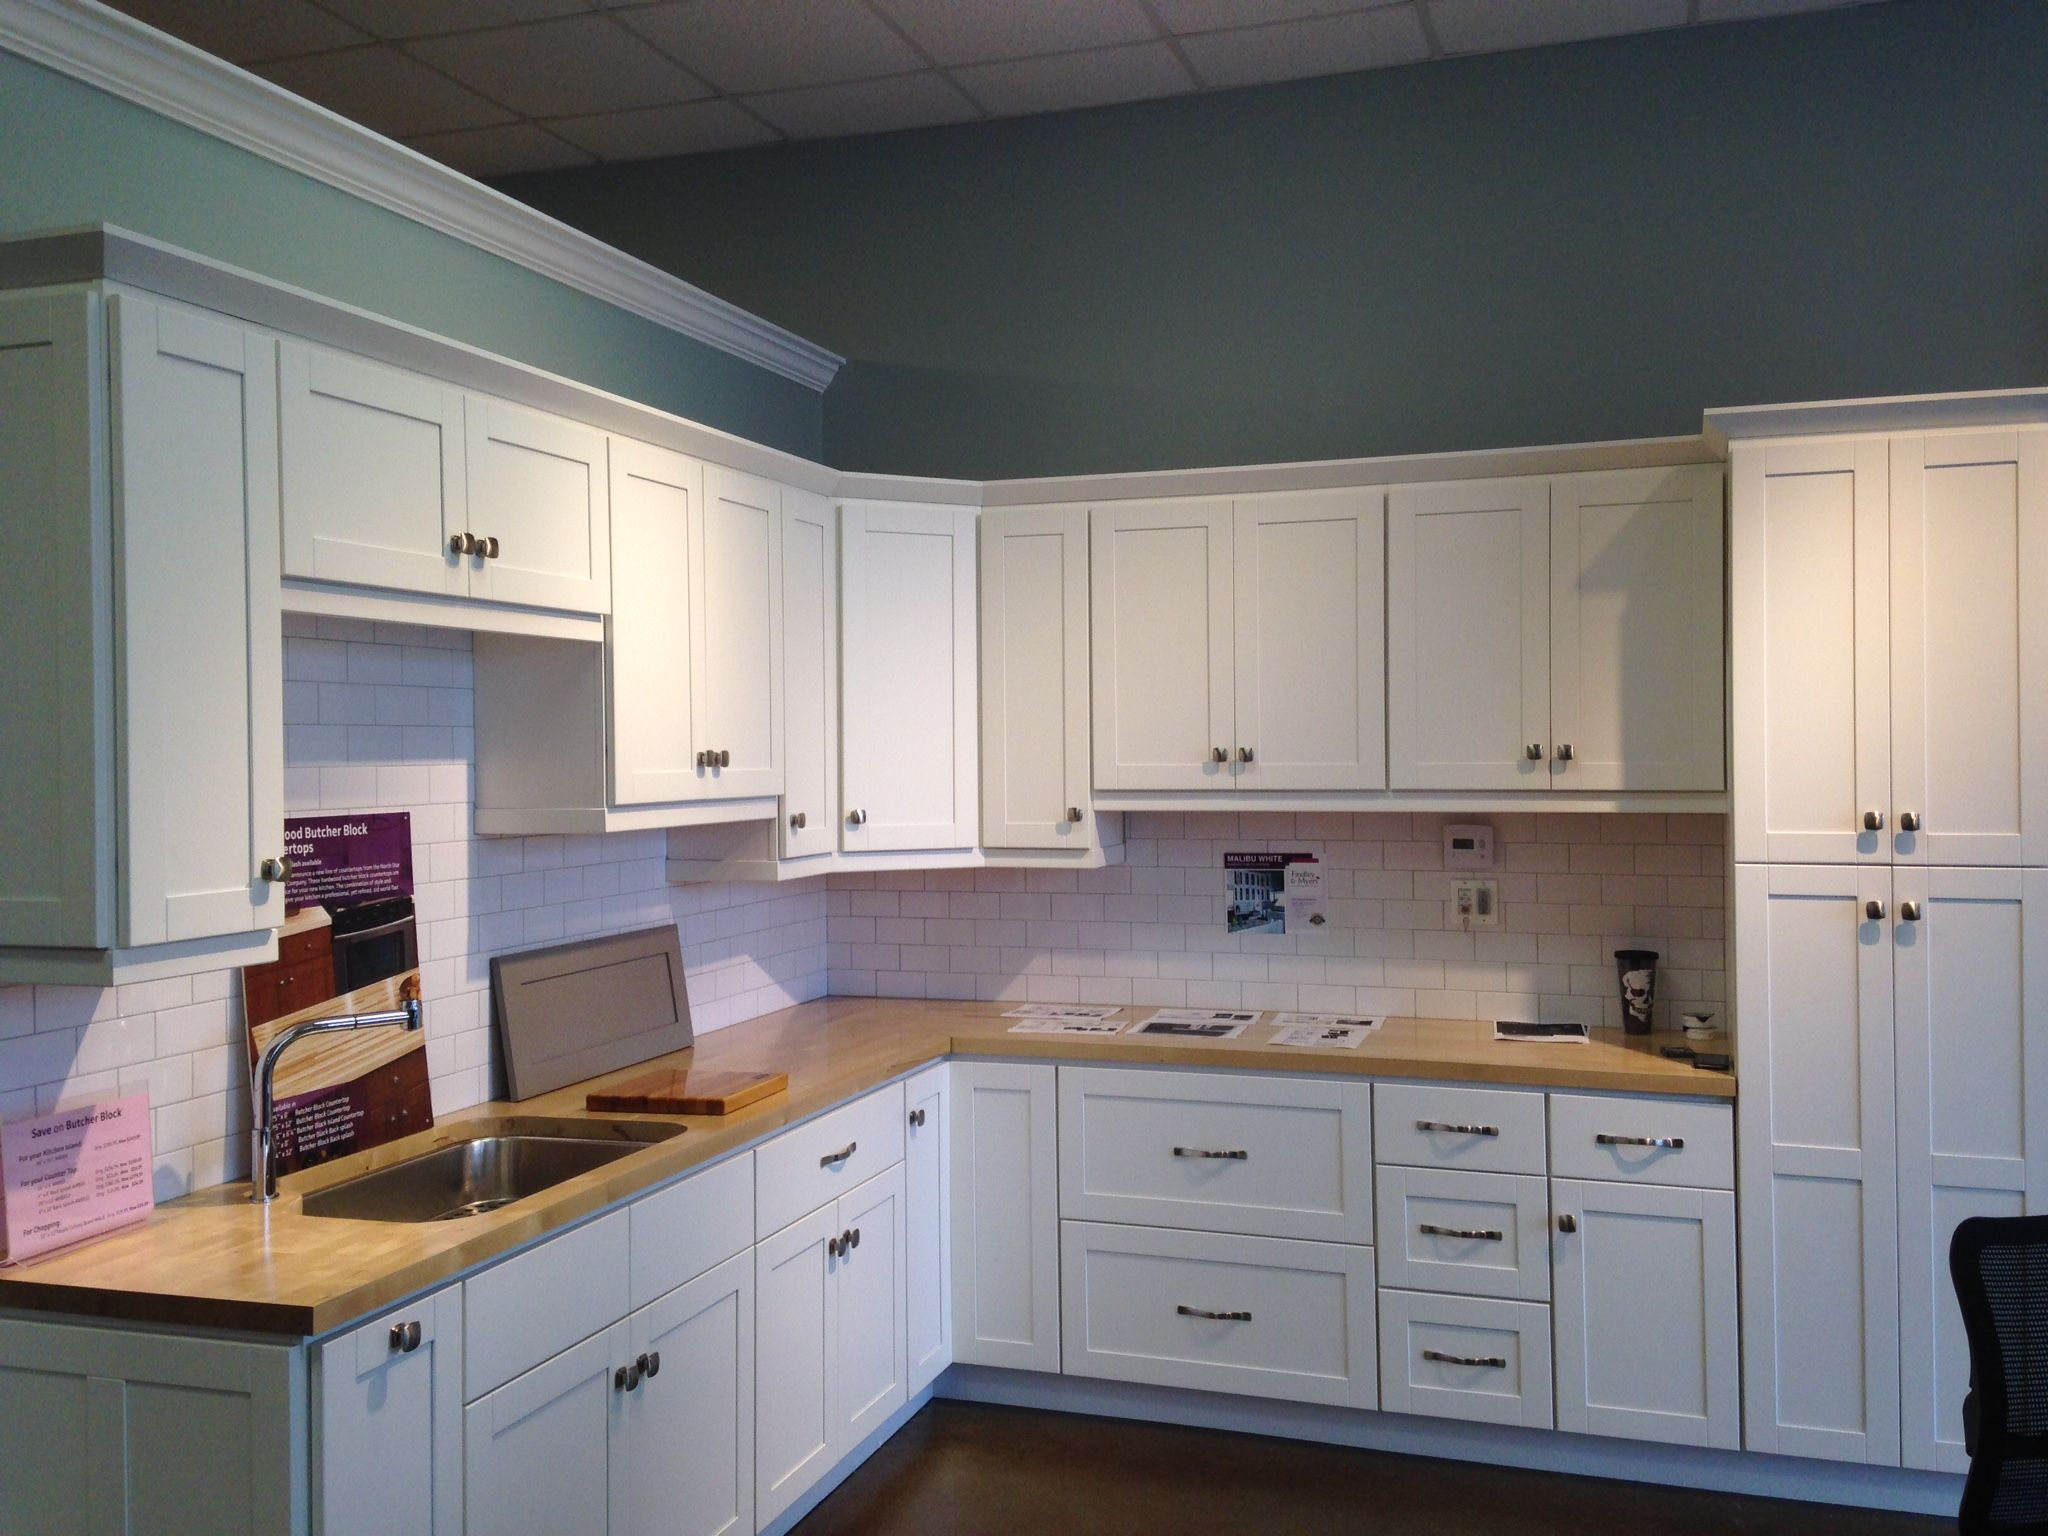 Malibu White cabinets from Cabinets To Go